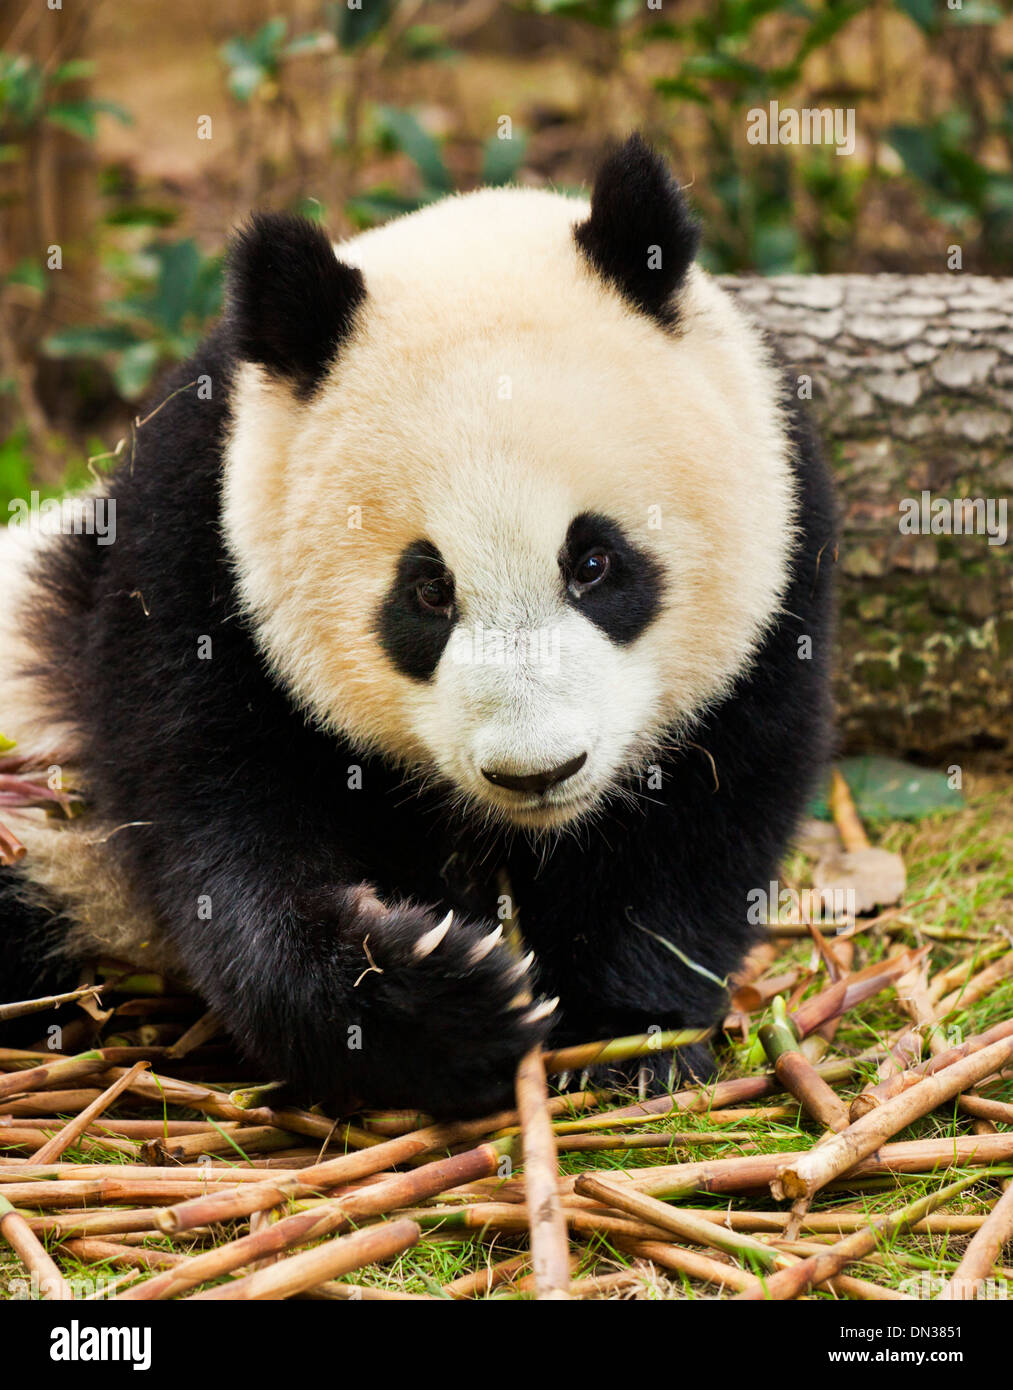 Giant Panda, Ailuropoda melanoleuca Panda Breeding and research centre, Chengdu PRC, People's Republic of China, Asia - Stock Image